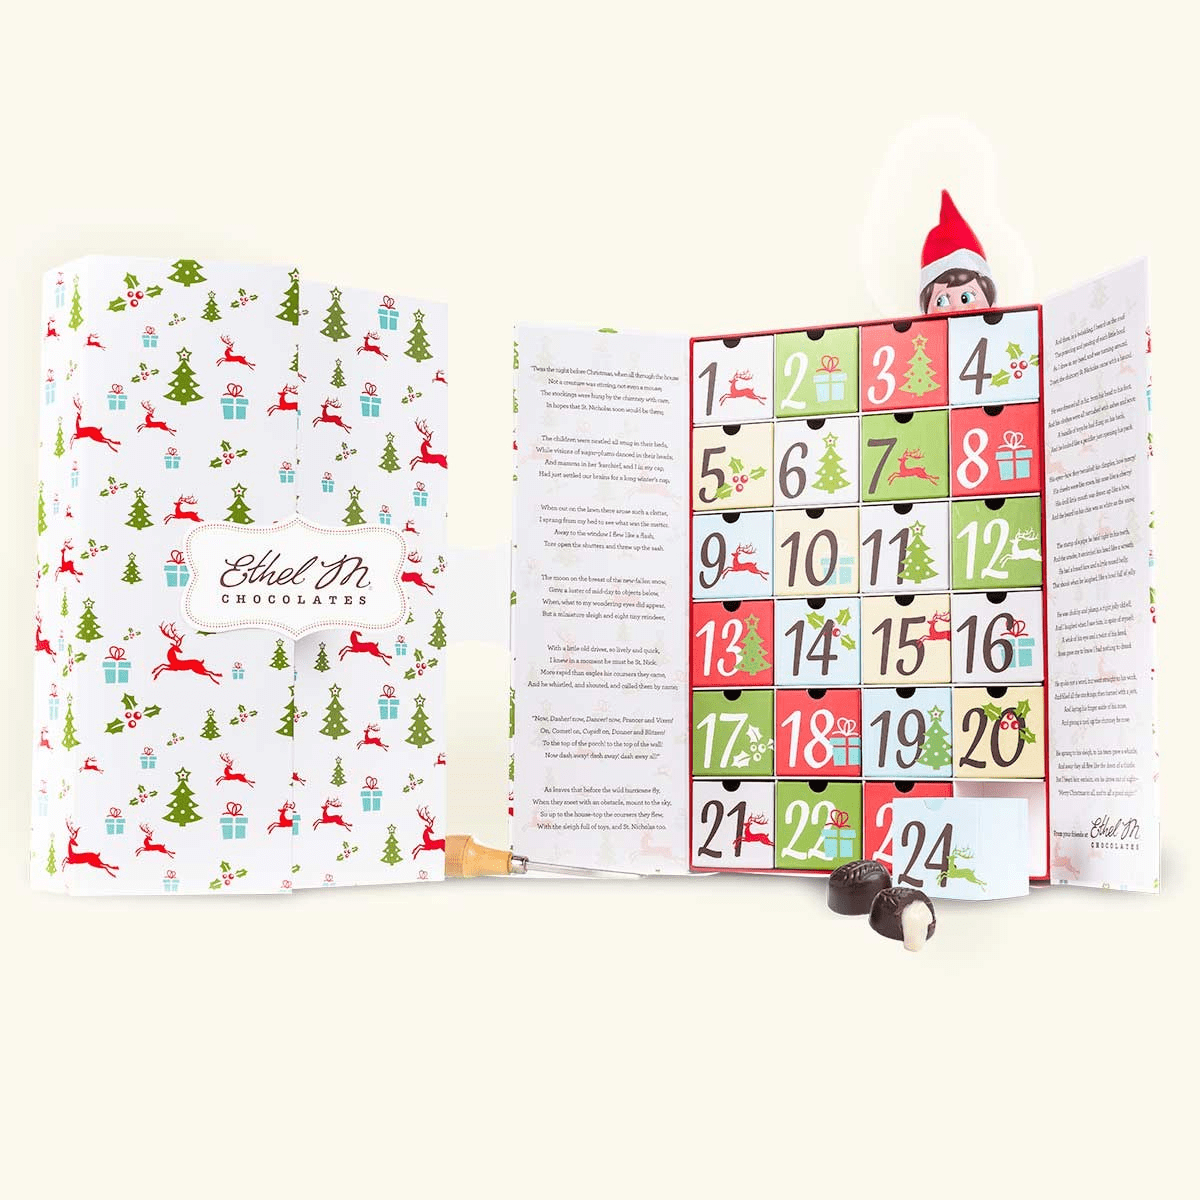 2019 Ethel M Chocolates Advent Calendar Available Now!